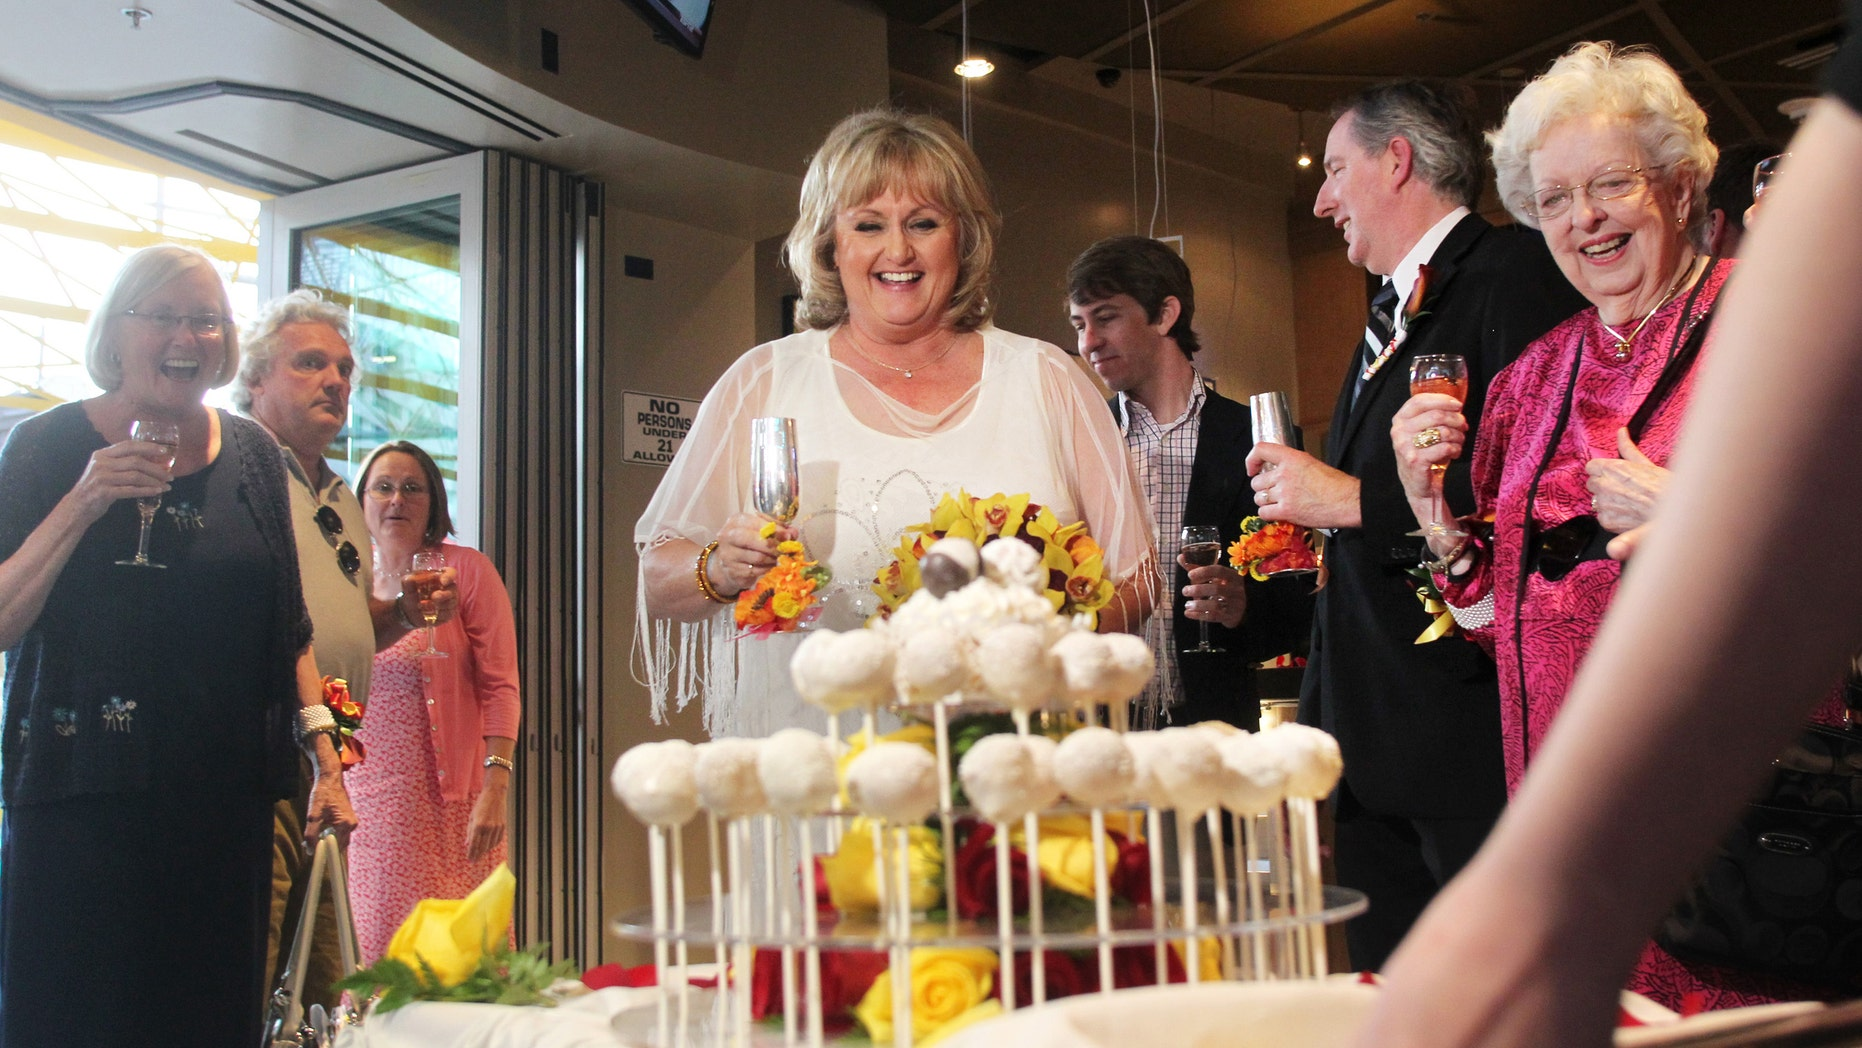 Nancy Levindowski reacts as her wedding cake is wheeled out after exchanging vows with Steve Keller at the Denny's restaurant.